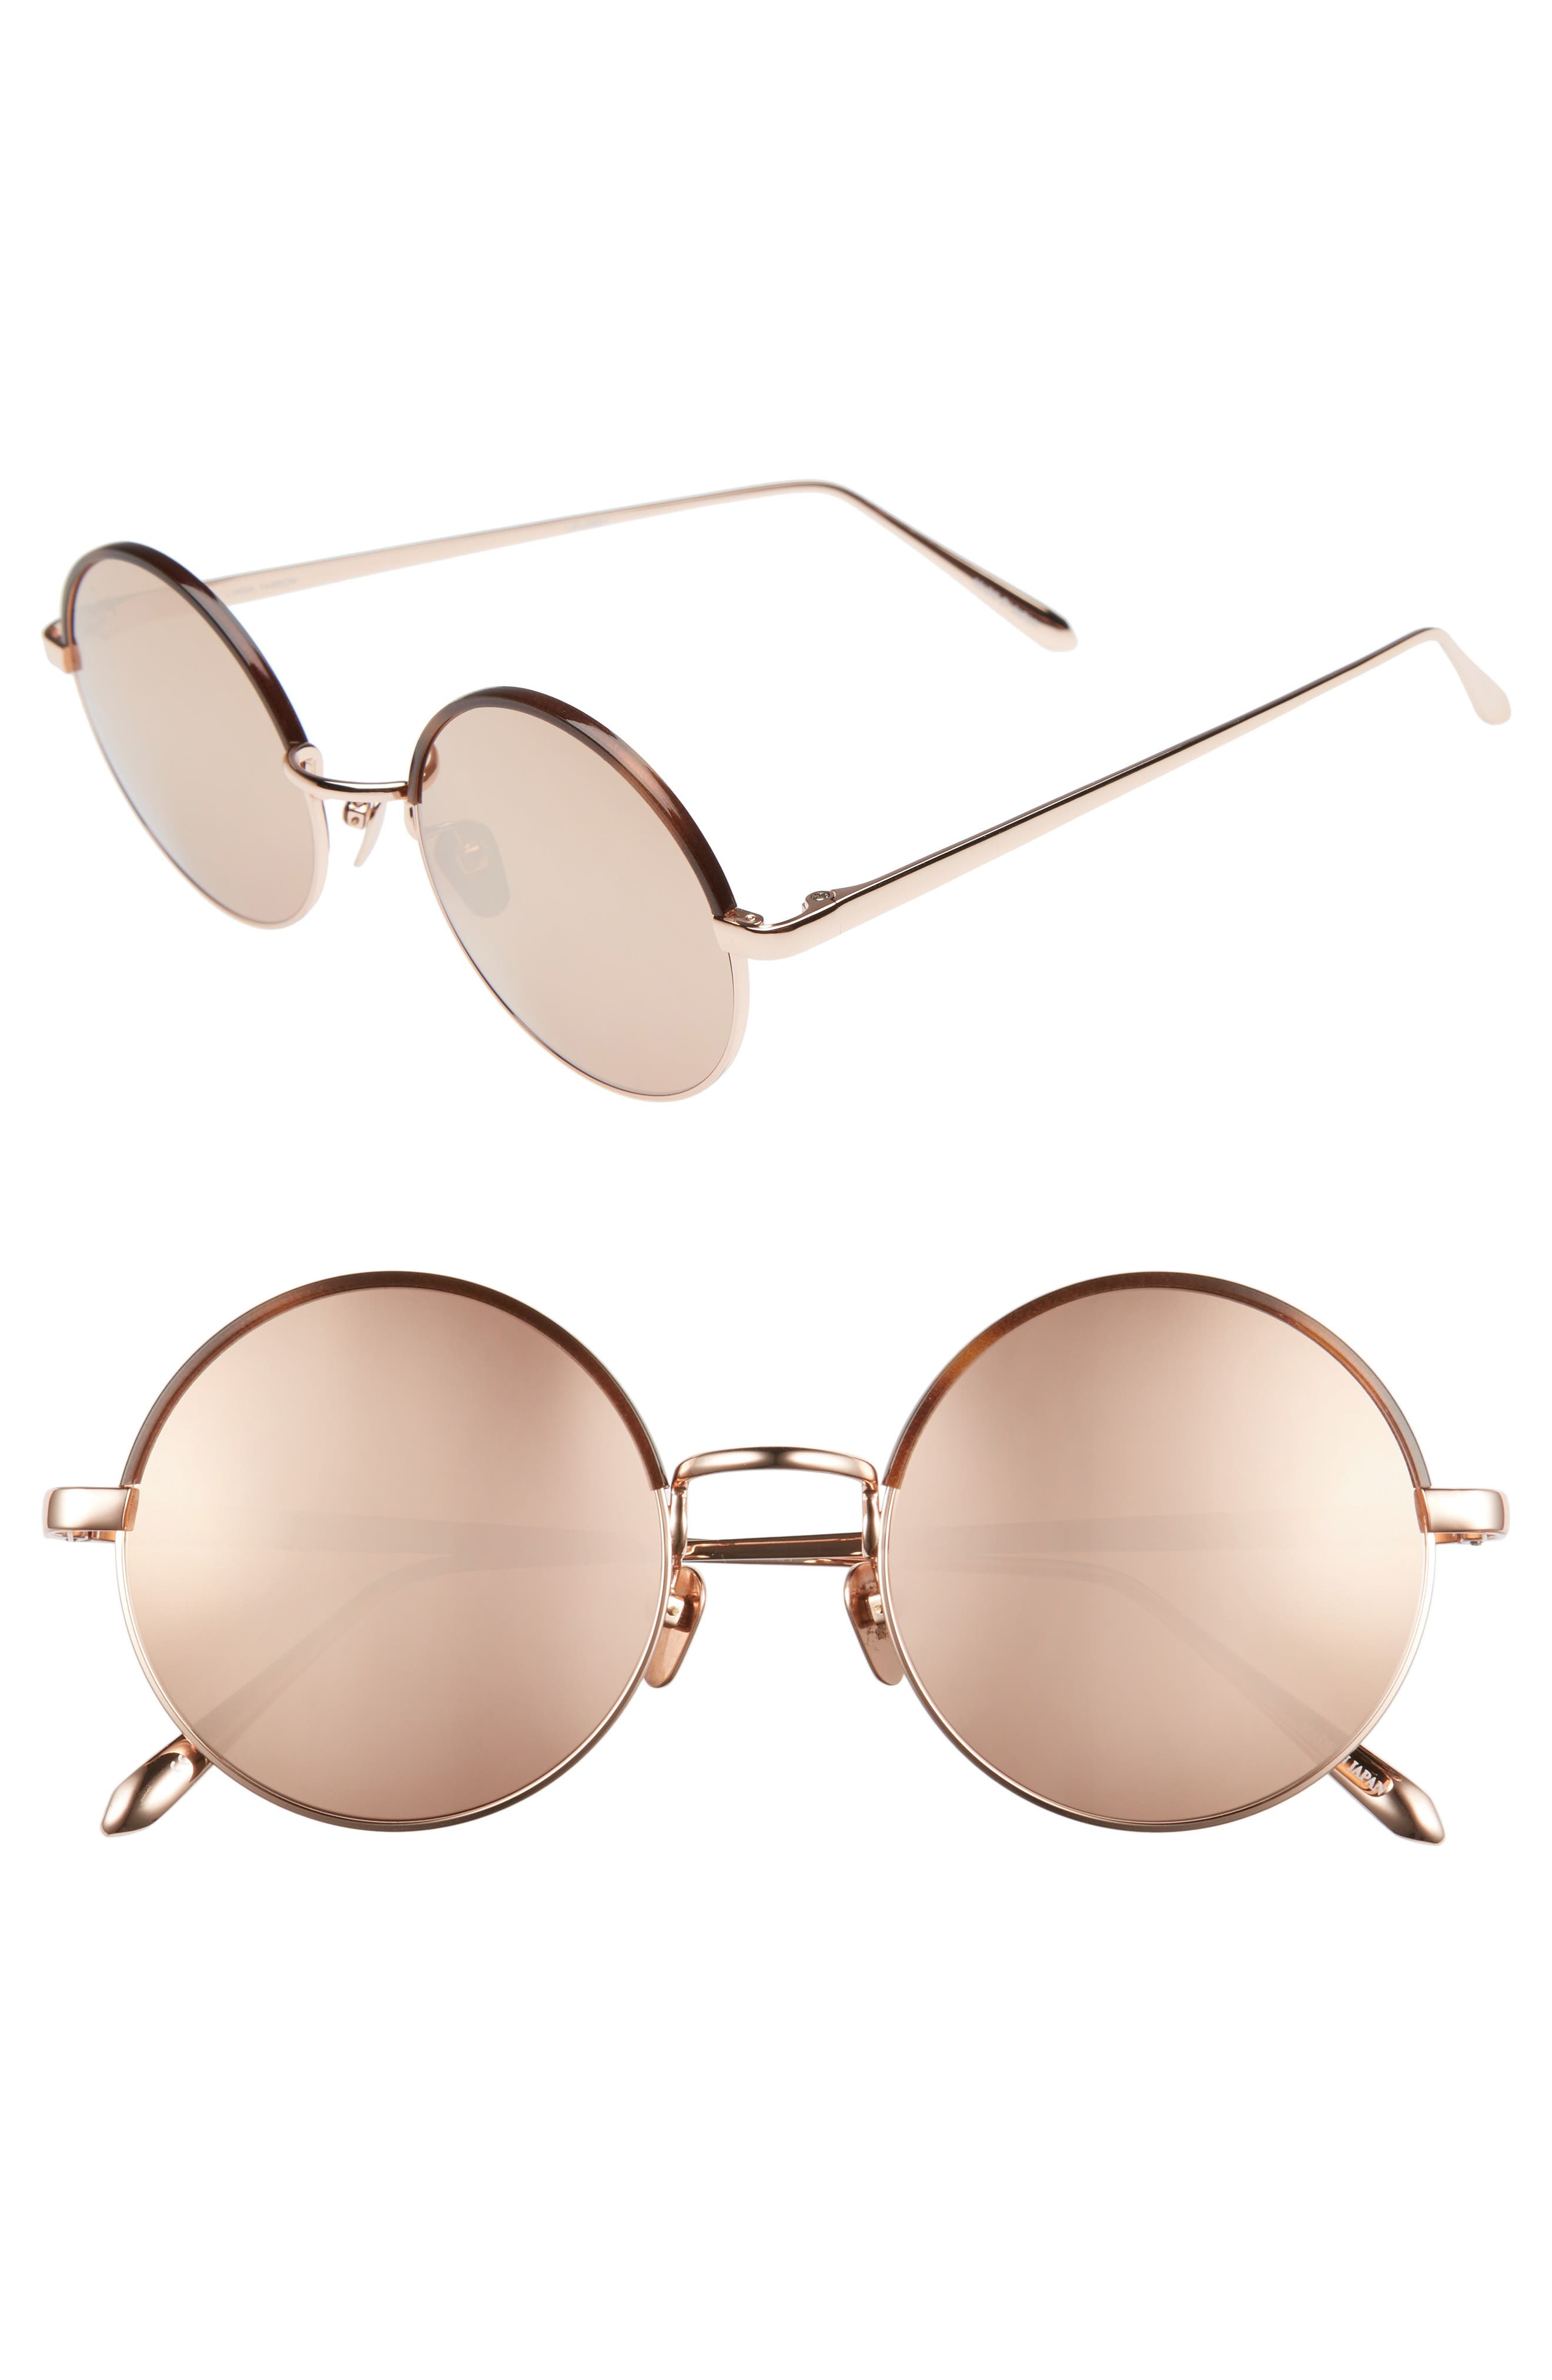 Main Image - Linda Farrow 51mm Mirrored 18 Karat Gold Trim Round Sunglasses